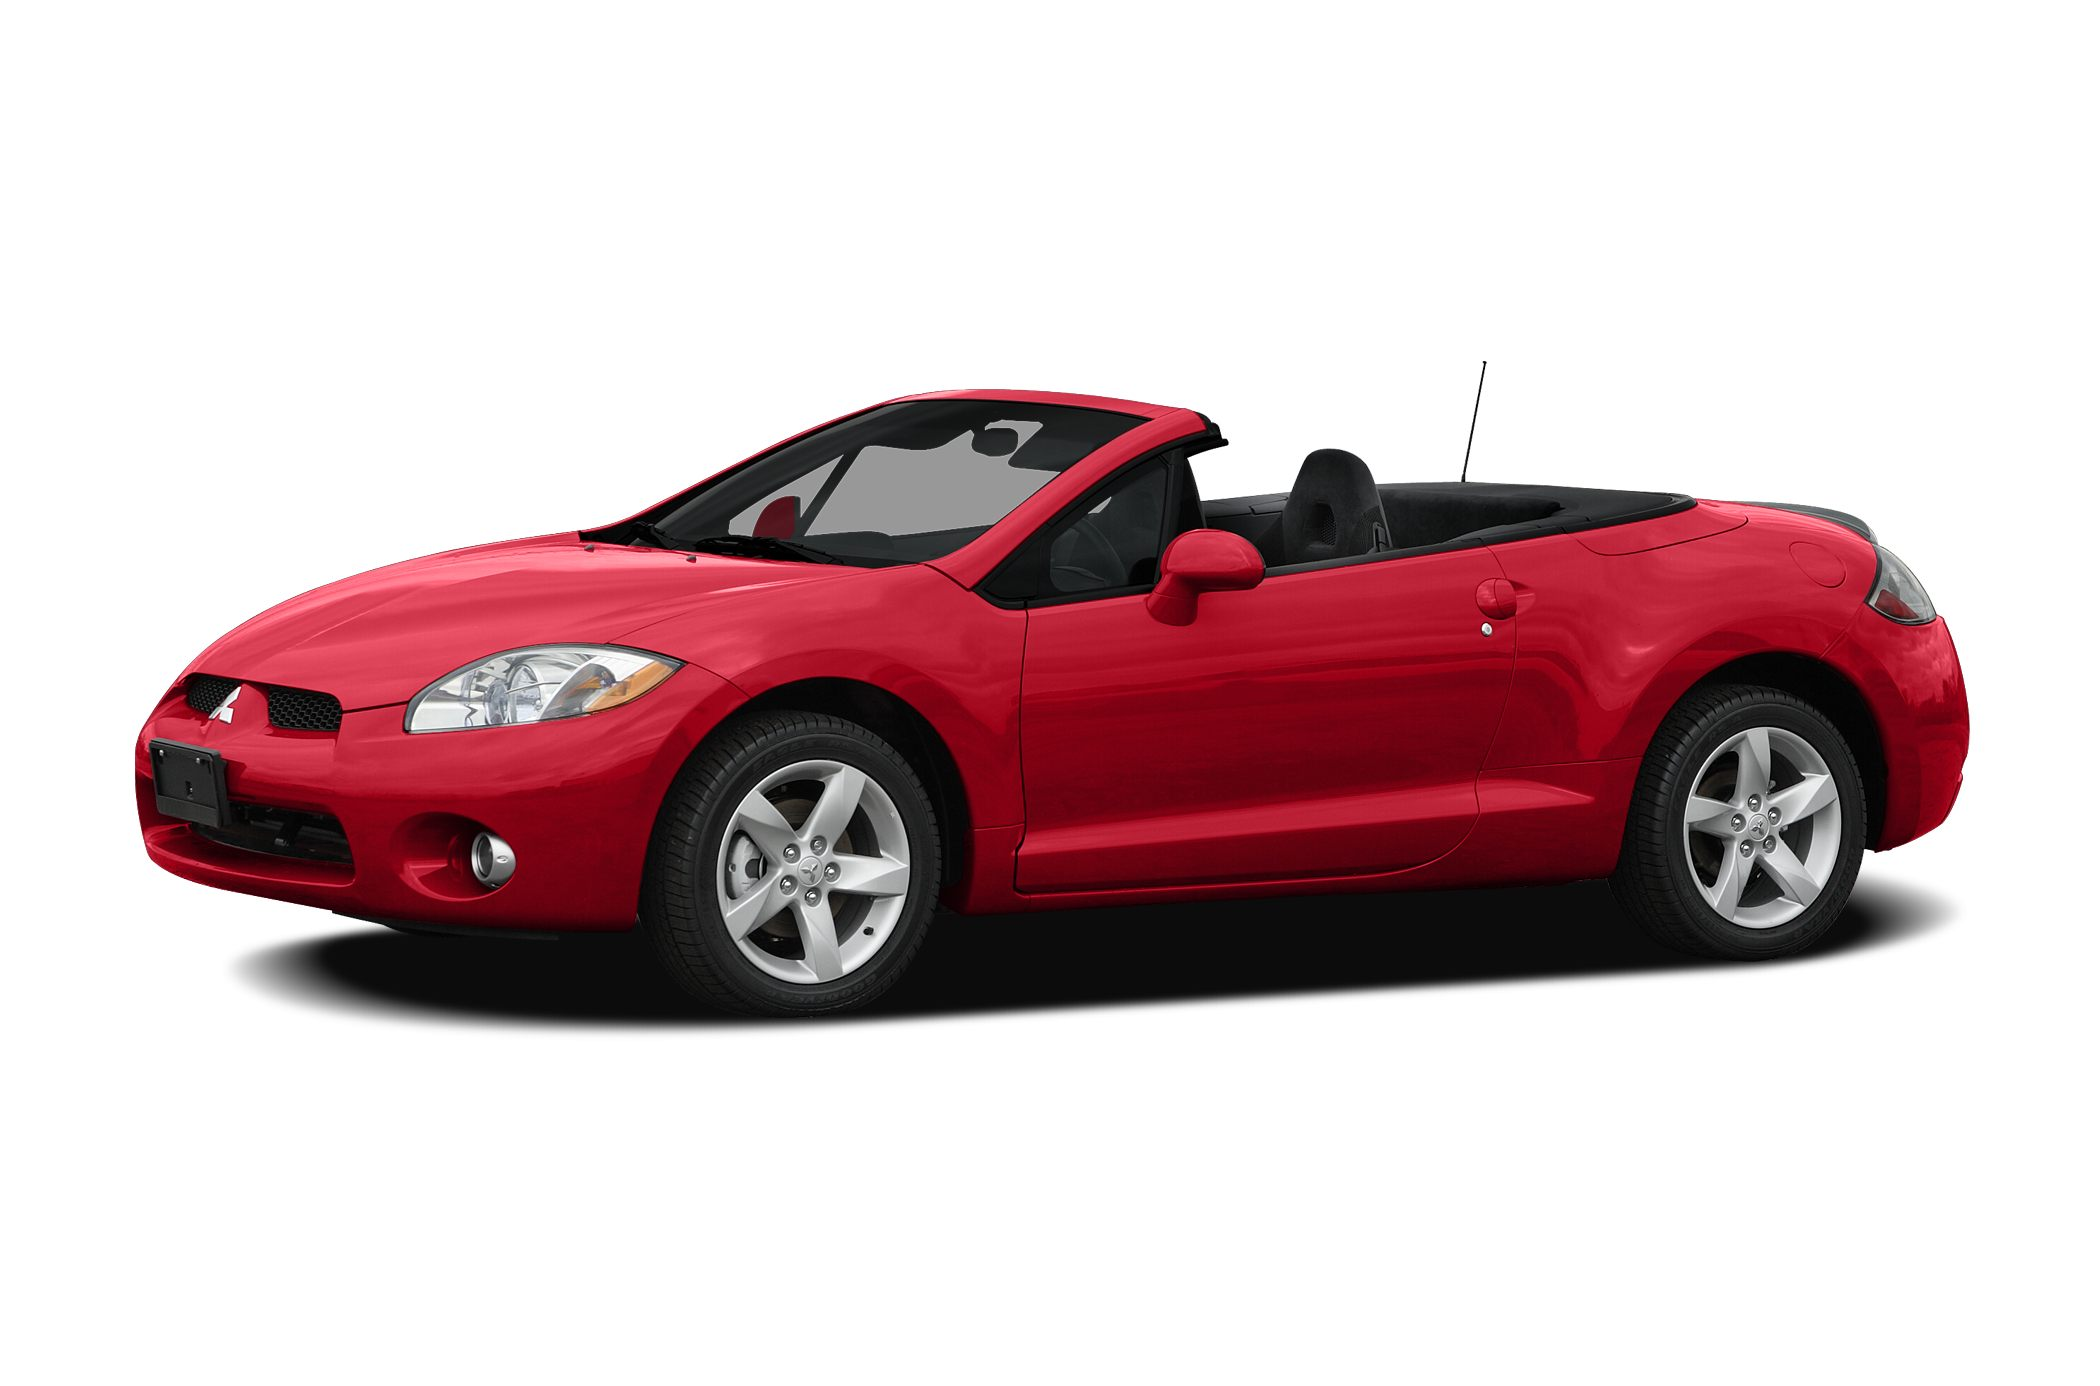 2008 Mitsubishi Eclipse Spyder GT Convertible for sale in Columbus for $13,820 with 38,912 miles